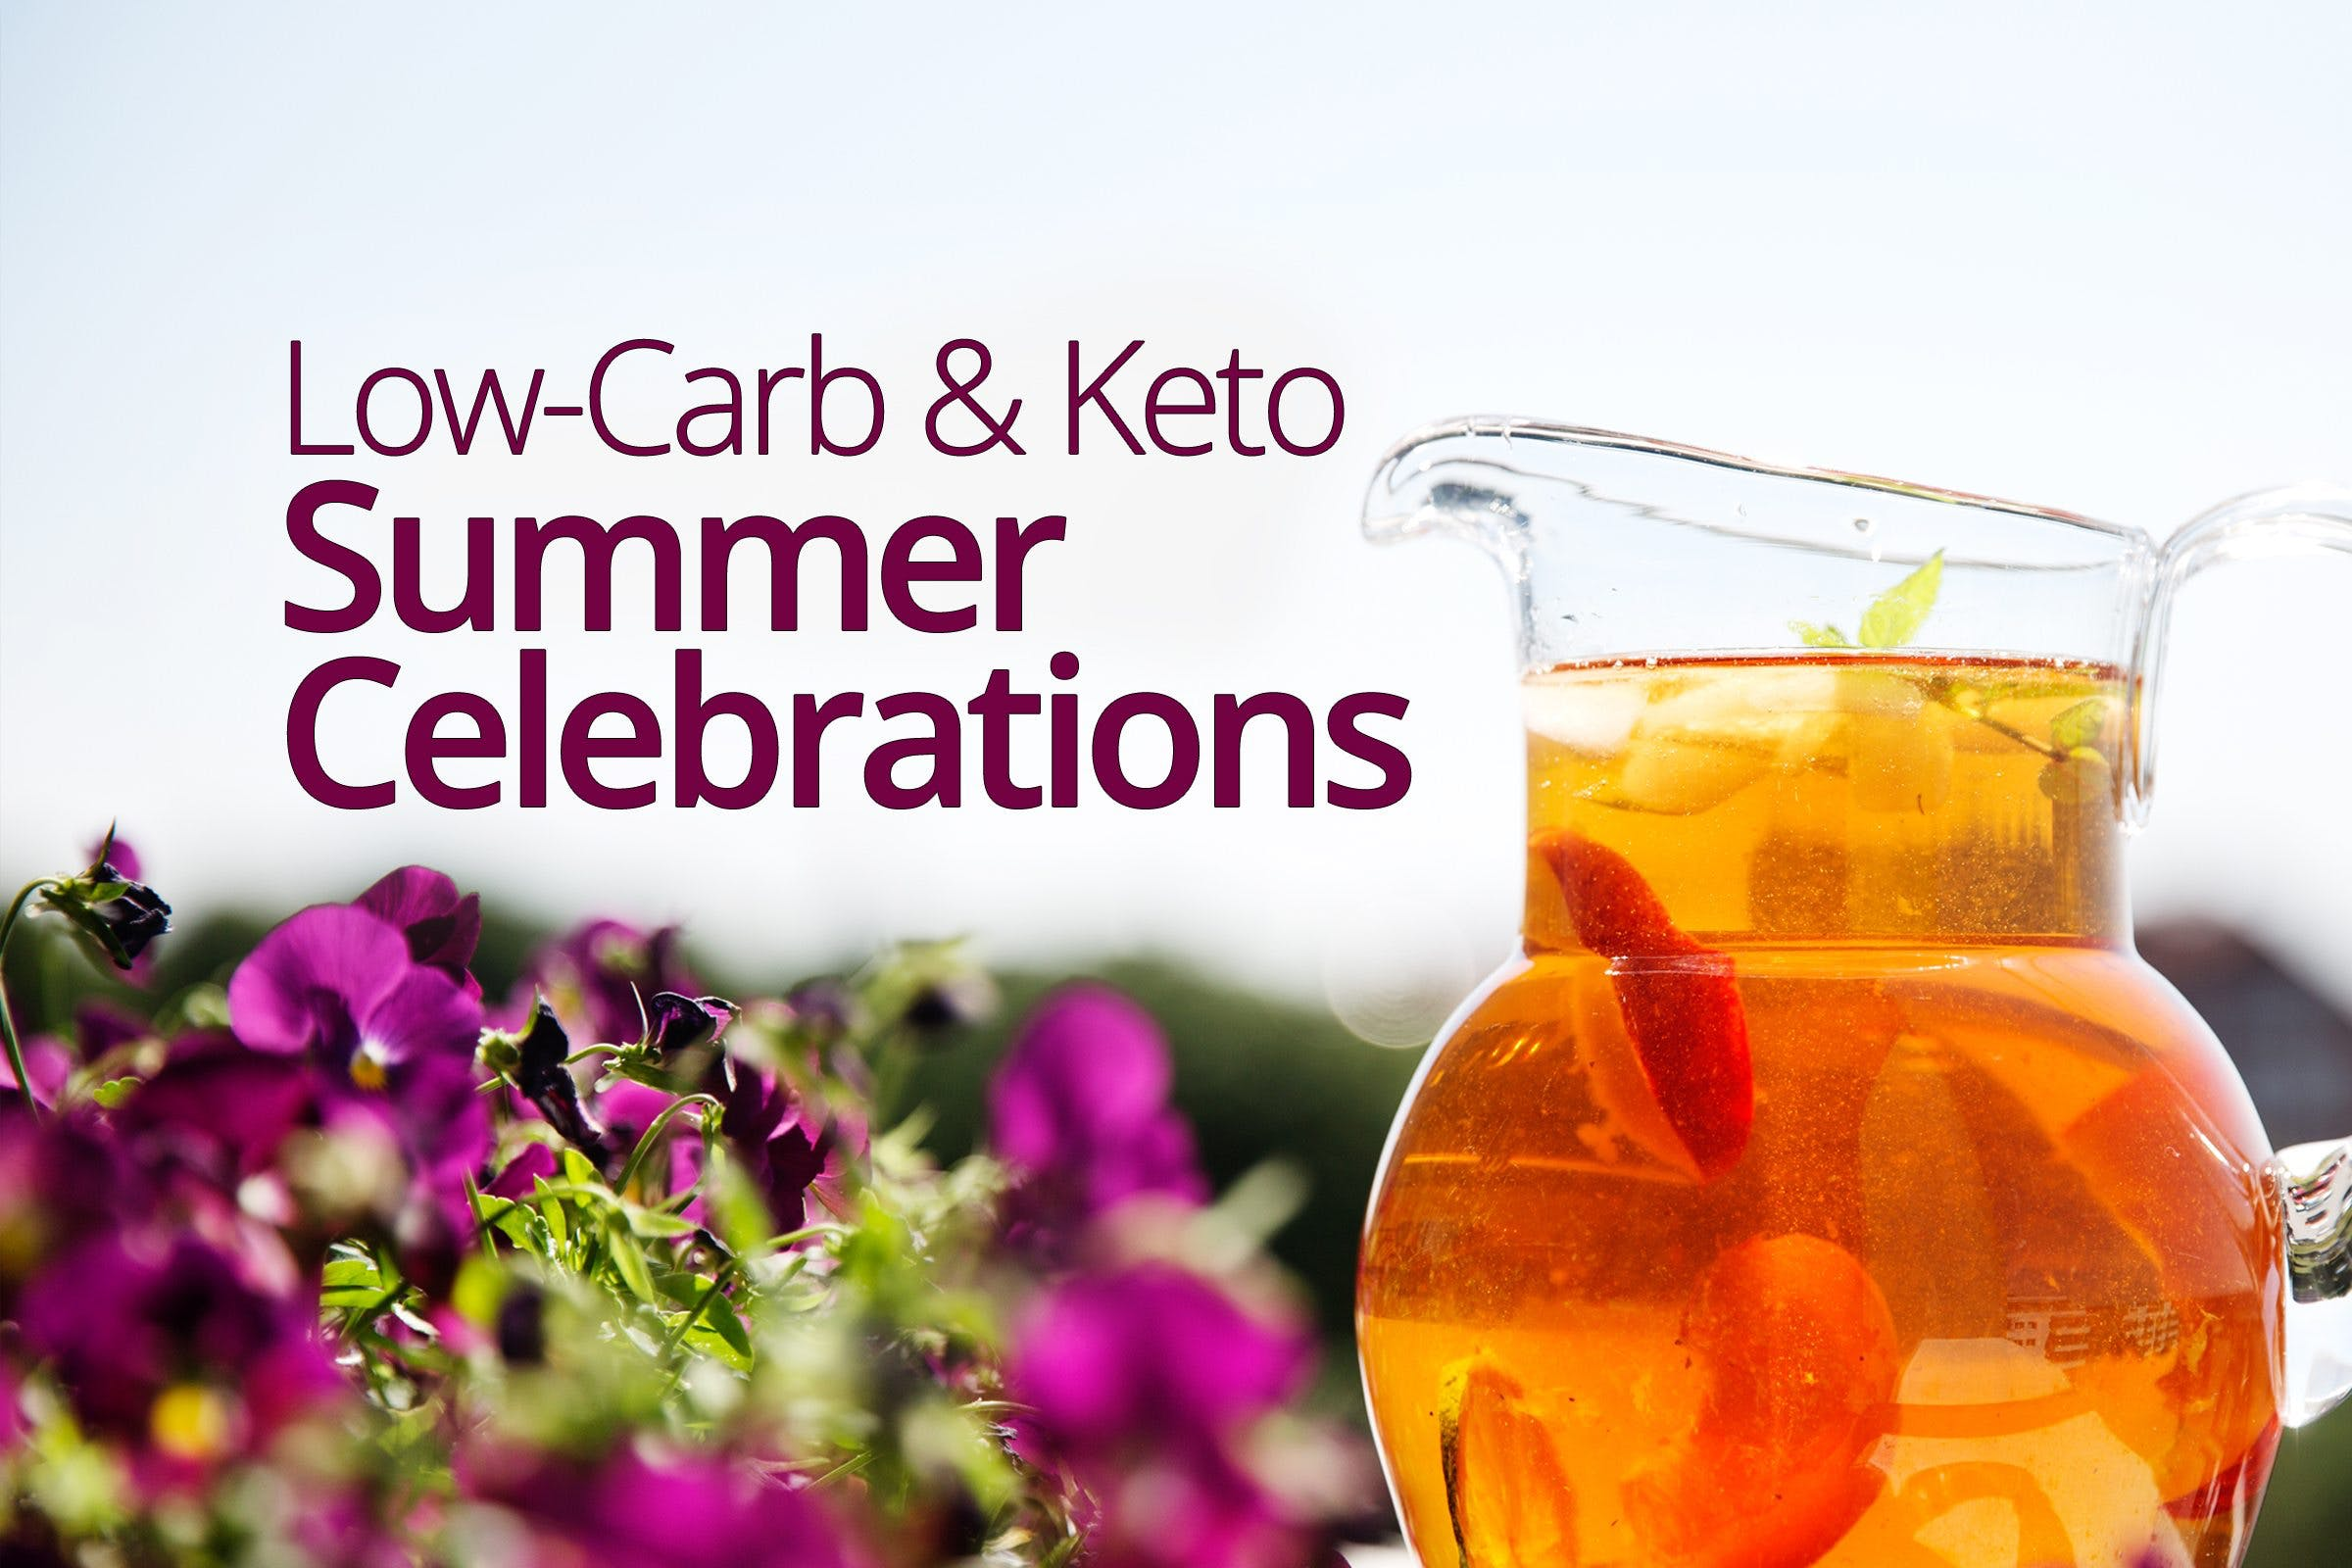 Low-Carb and Keto Summer Celebrations